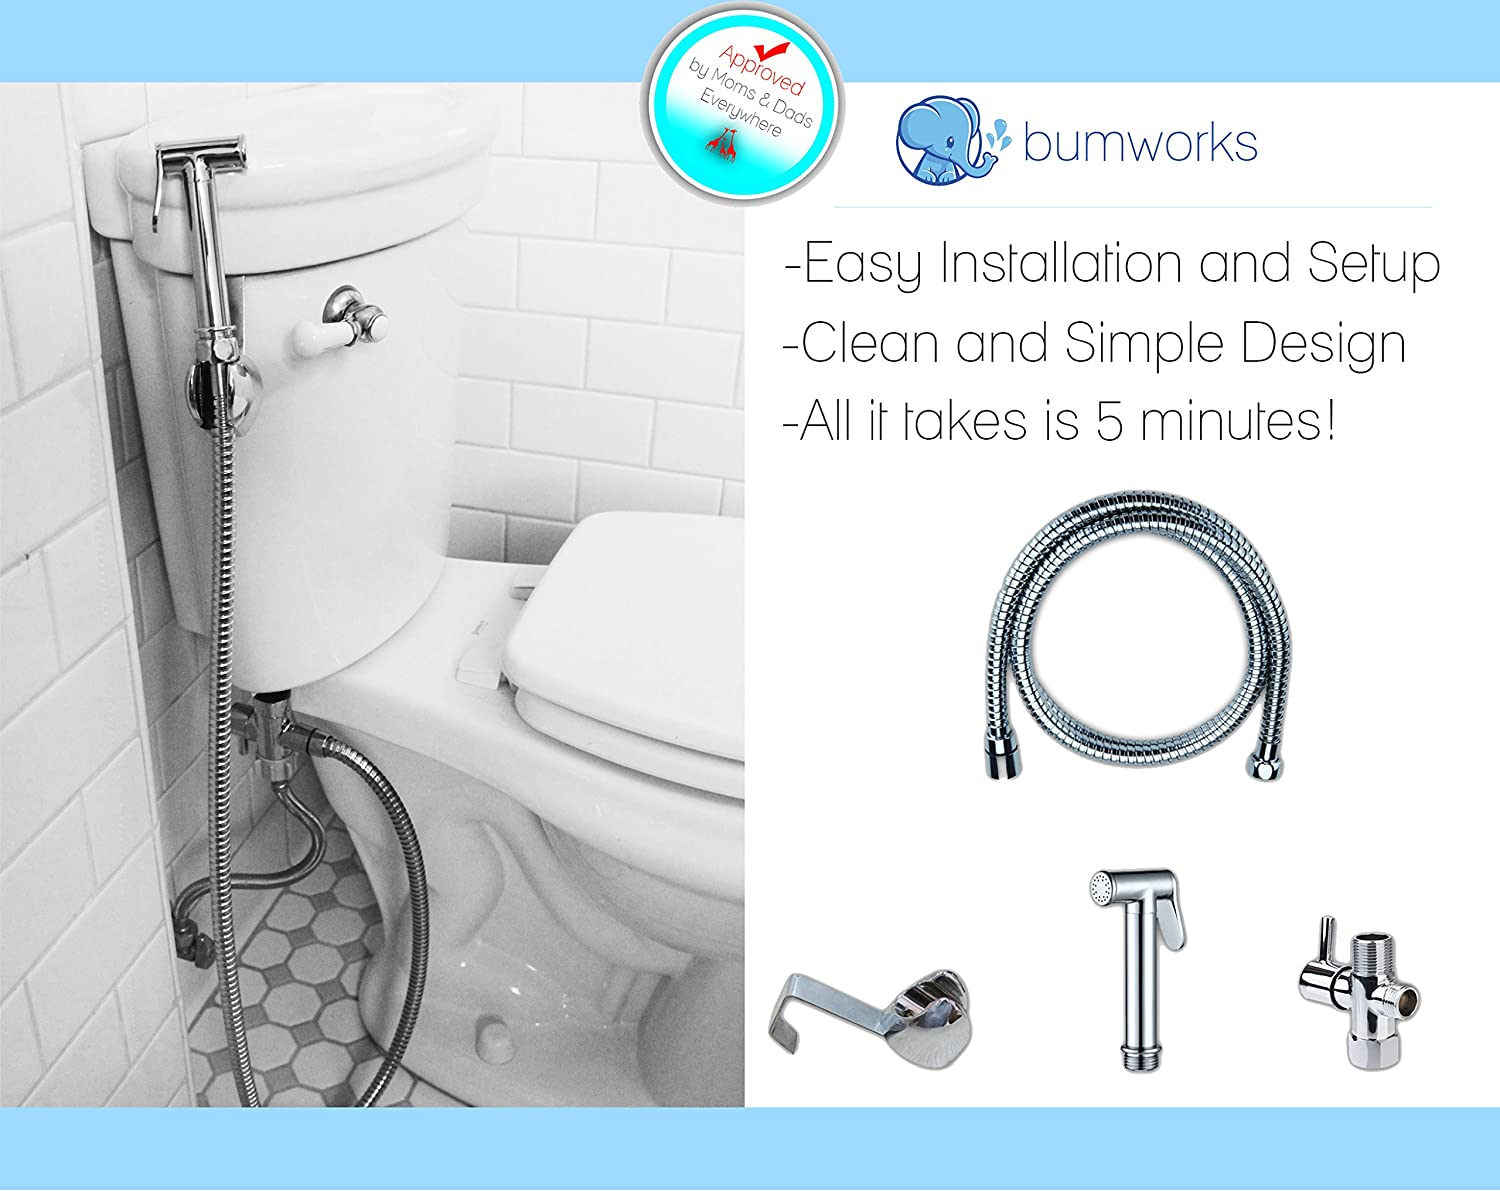 Bumworks Cloth Diaper Toilet Sprayer Kit - Brass Chrome Hand Held Bidet w/Metal Hose, T-Valve (7/8 inch), and Mounting Clip Attachment Adapter (3 Way T-Valve) Kaydee Baby